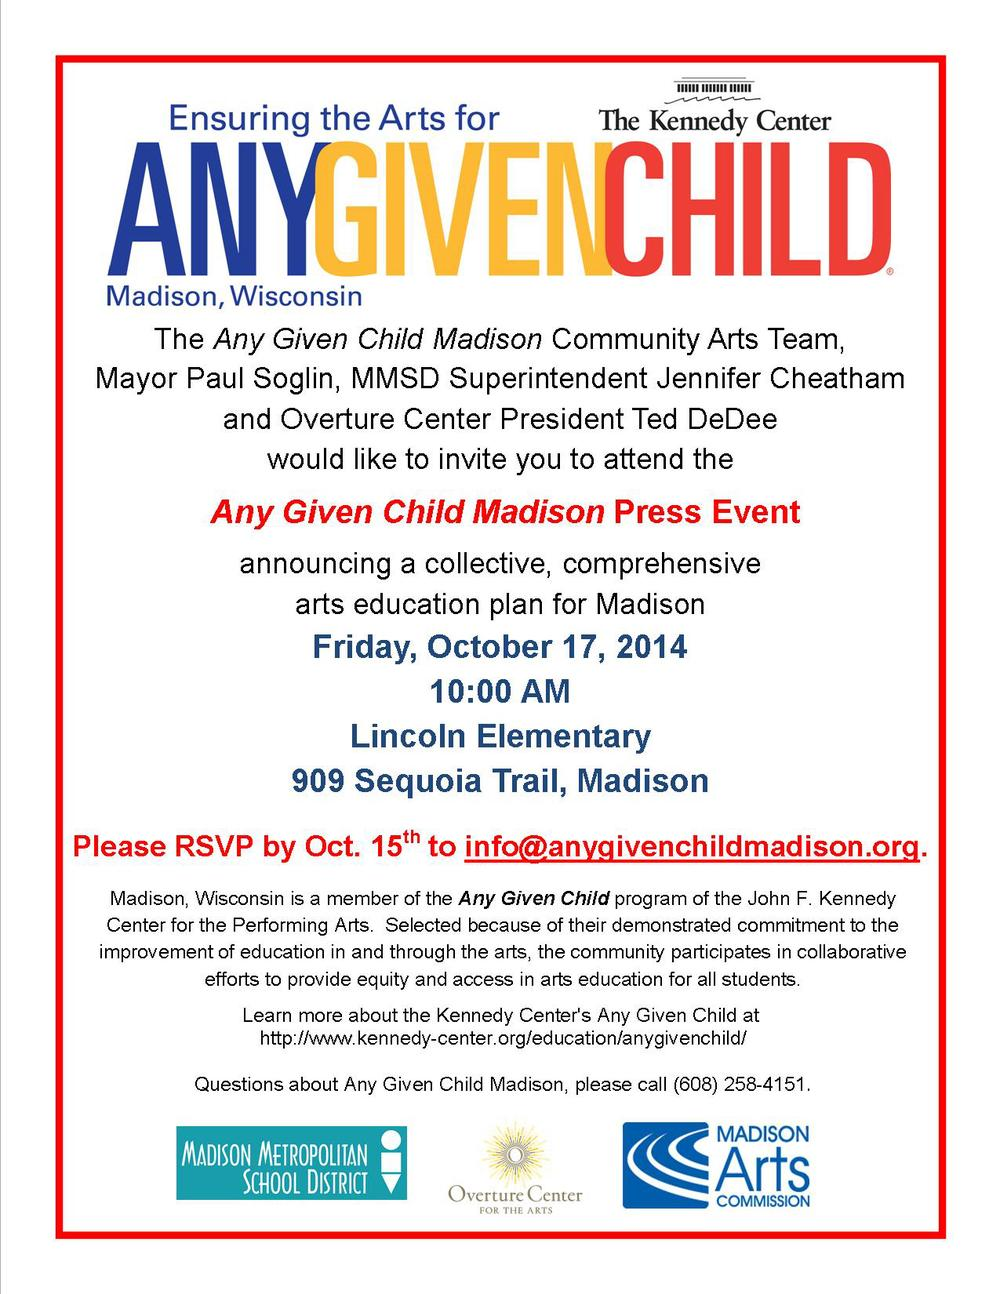 Any Given Child Madison Press Conference Invitation